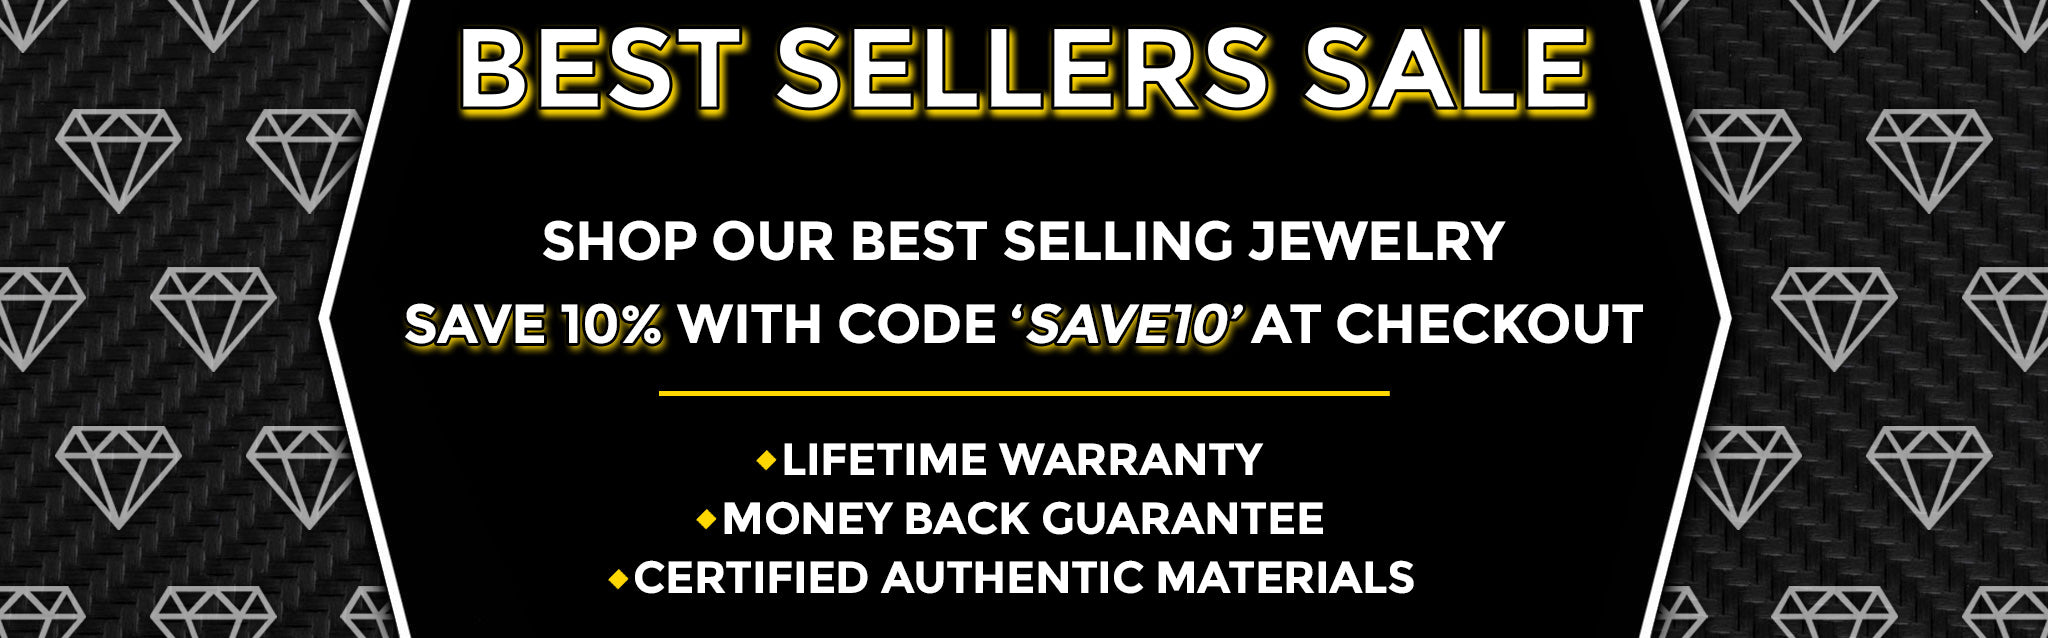 Gold City Best Selling Jewelry